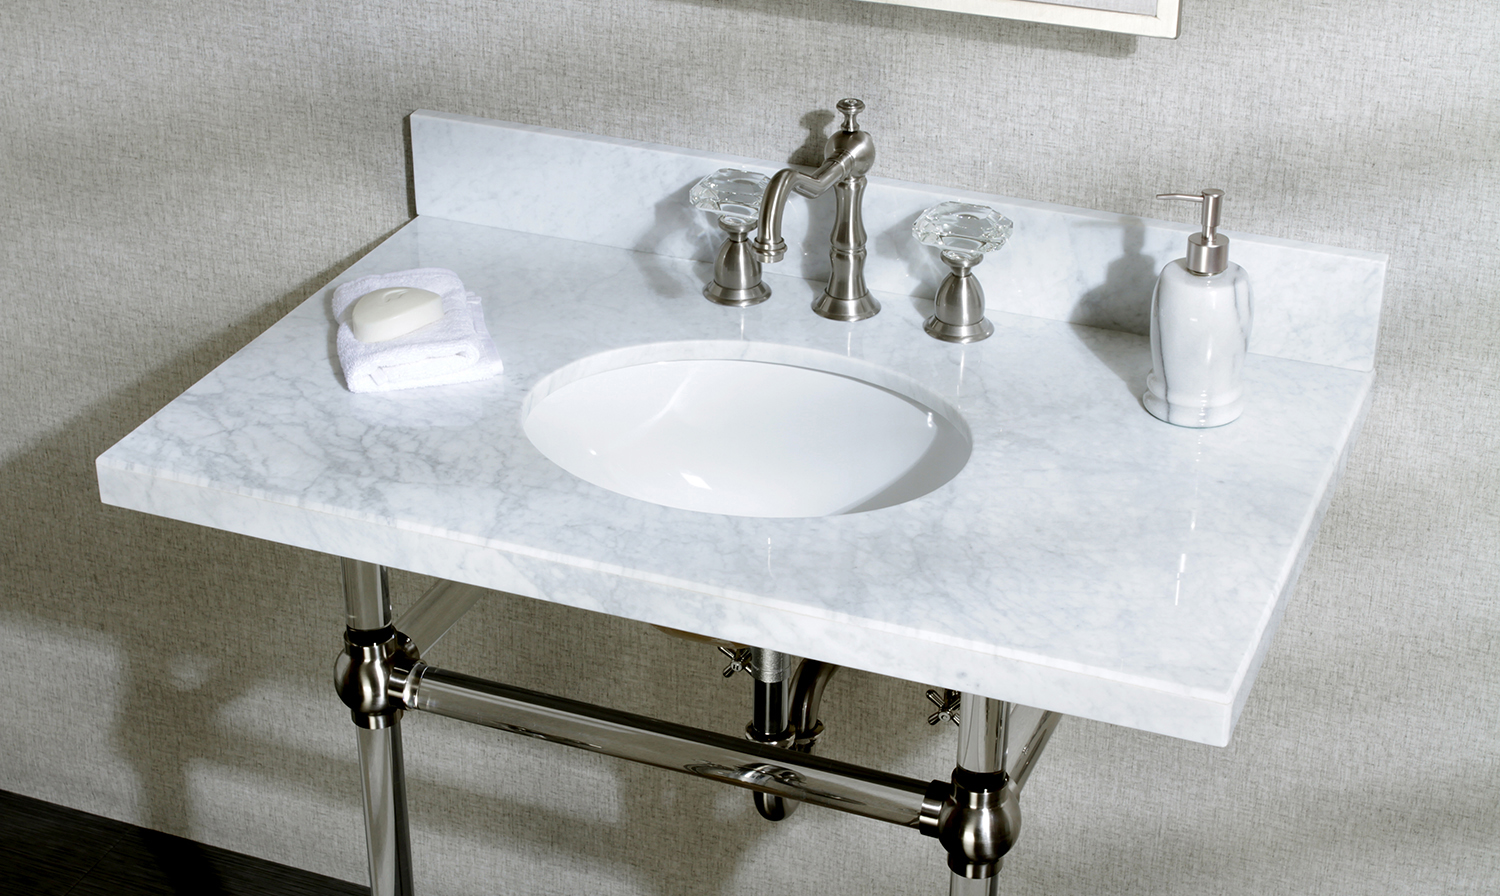 Bathroom design when to save and when to splurge for Bathroom design kingston